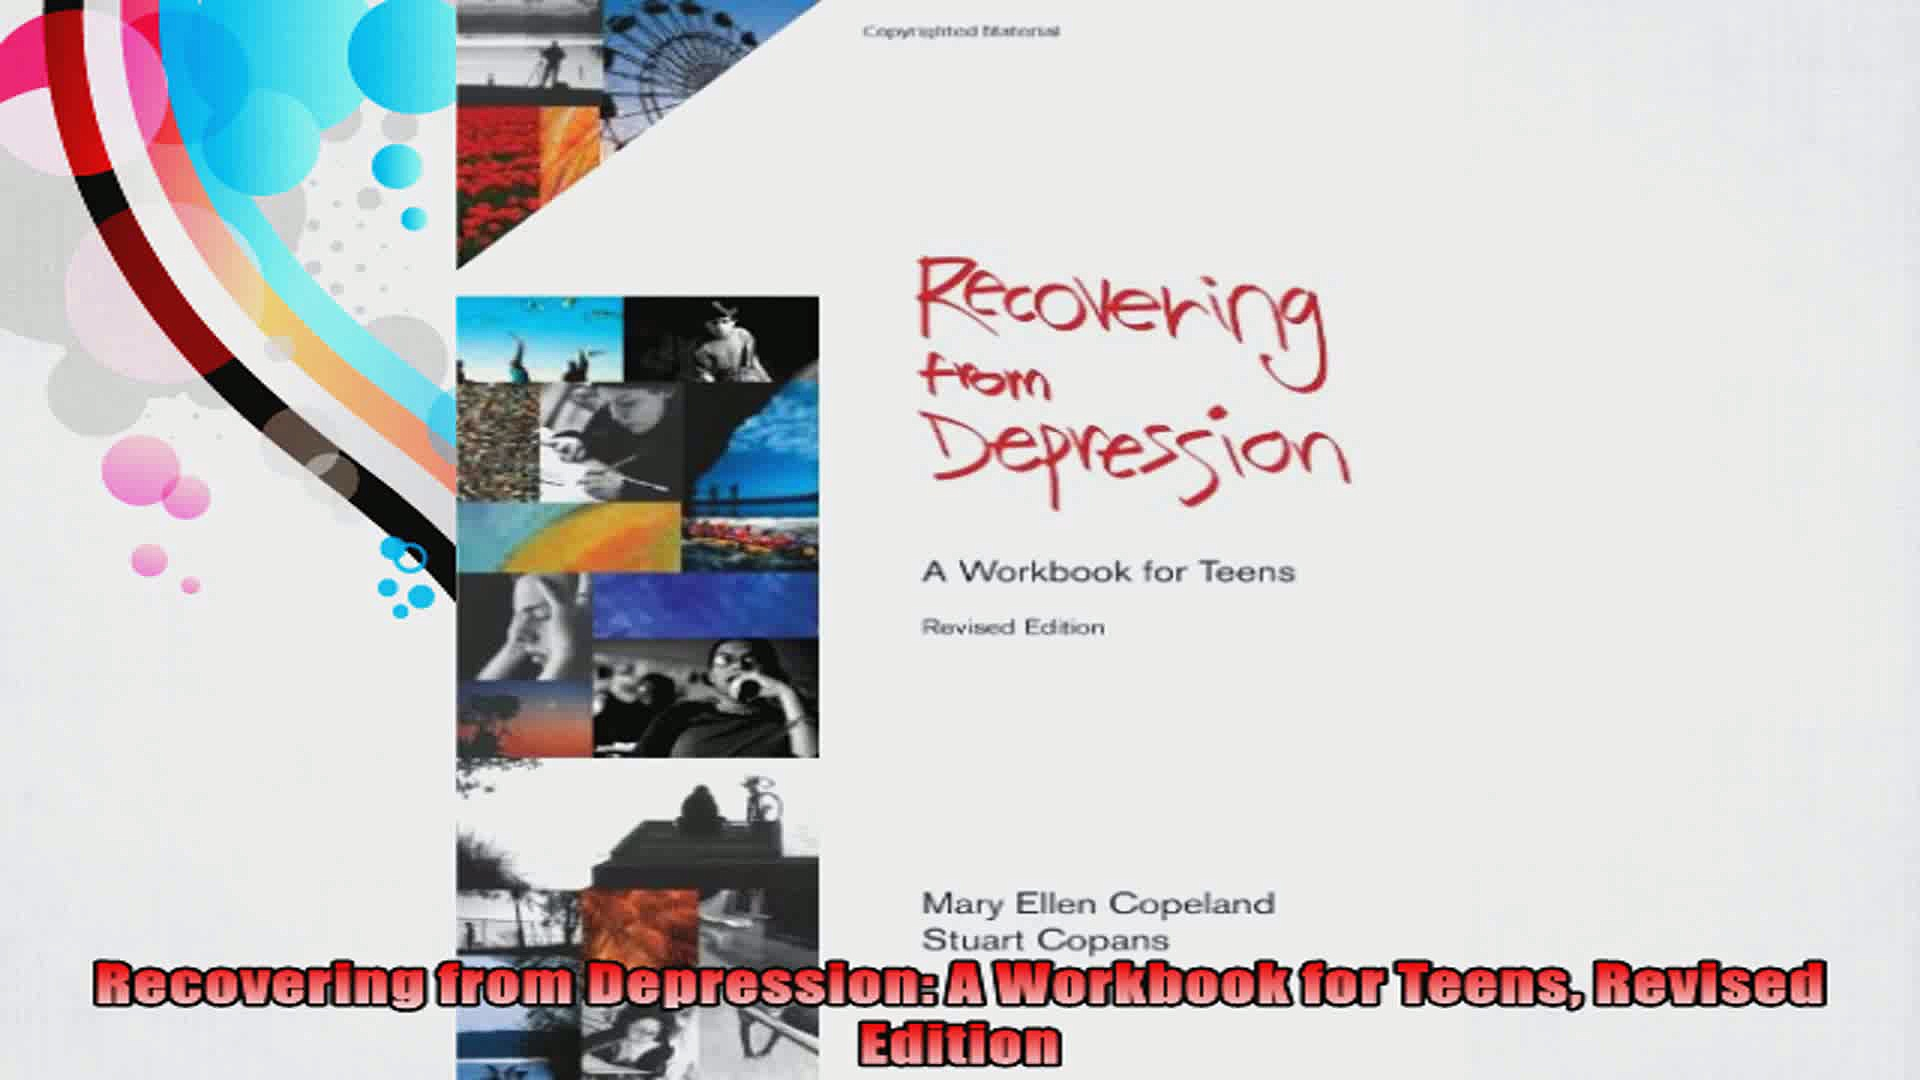 Recovering from Depression A Workbook for Teens Revised Edition